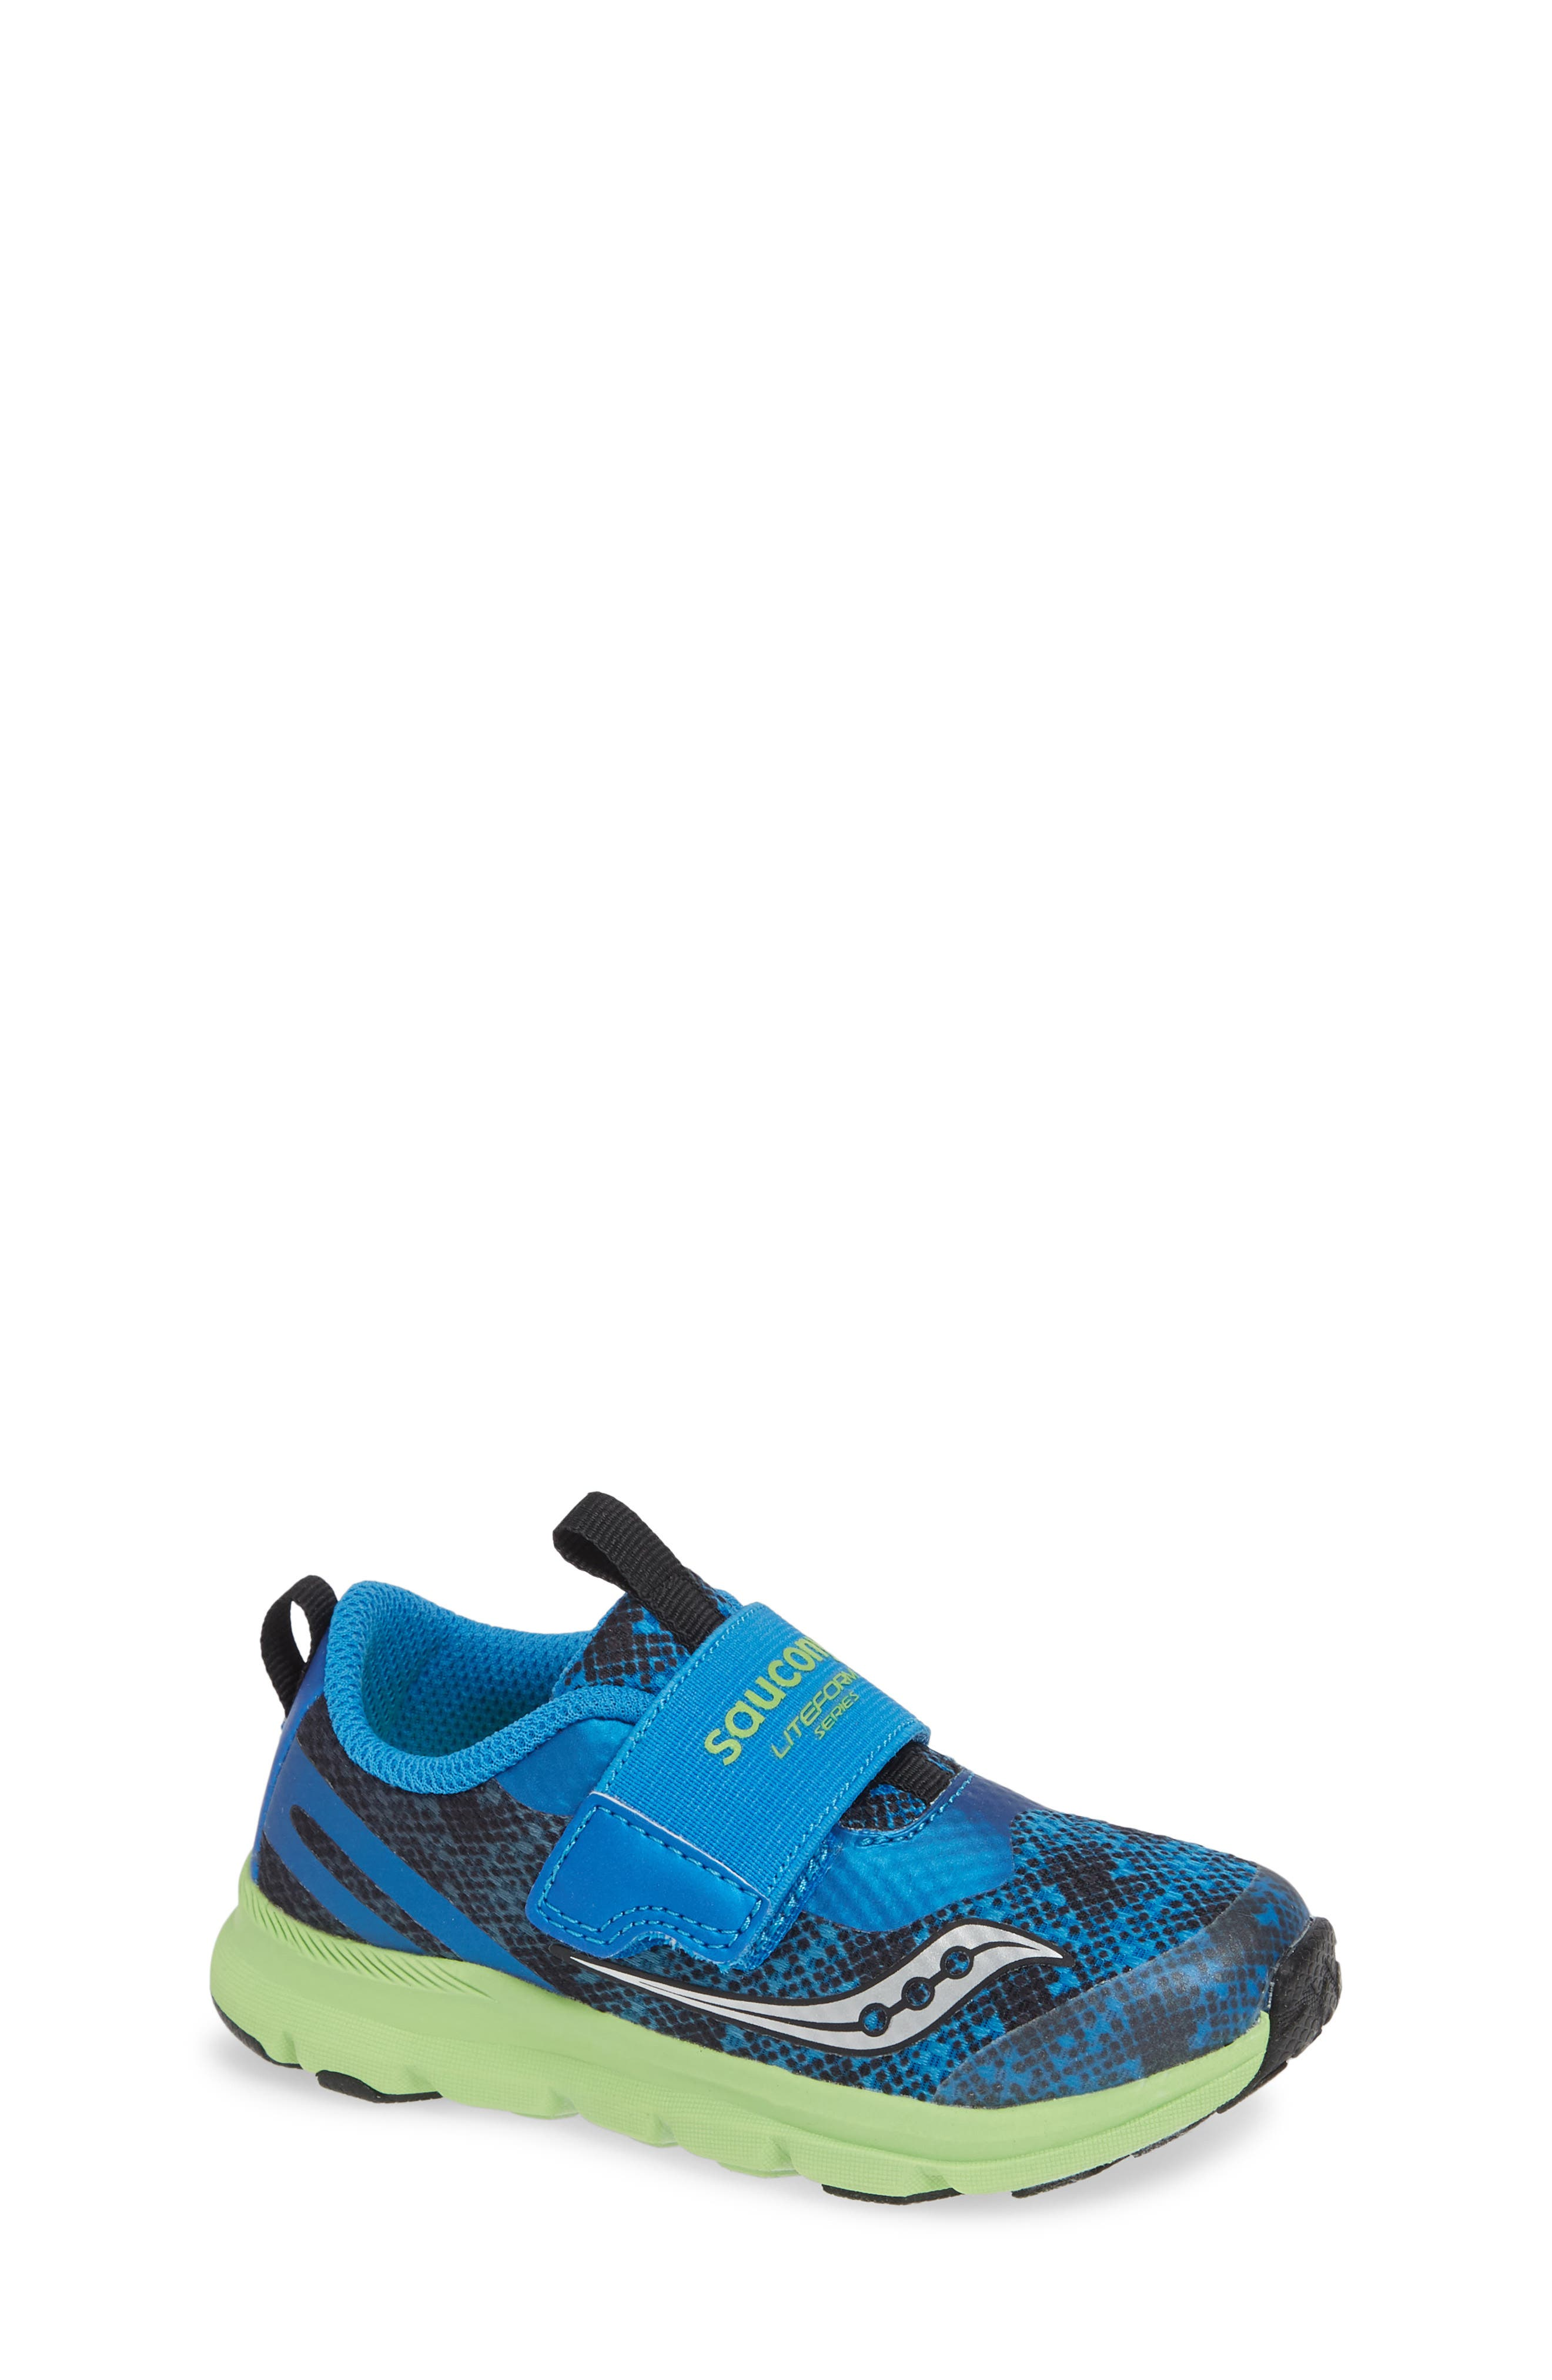 Baby Liteform Sneaker,                         Main,                         color, BLUE/ GREEN